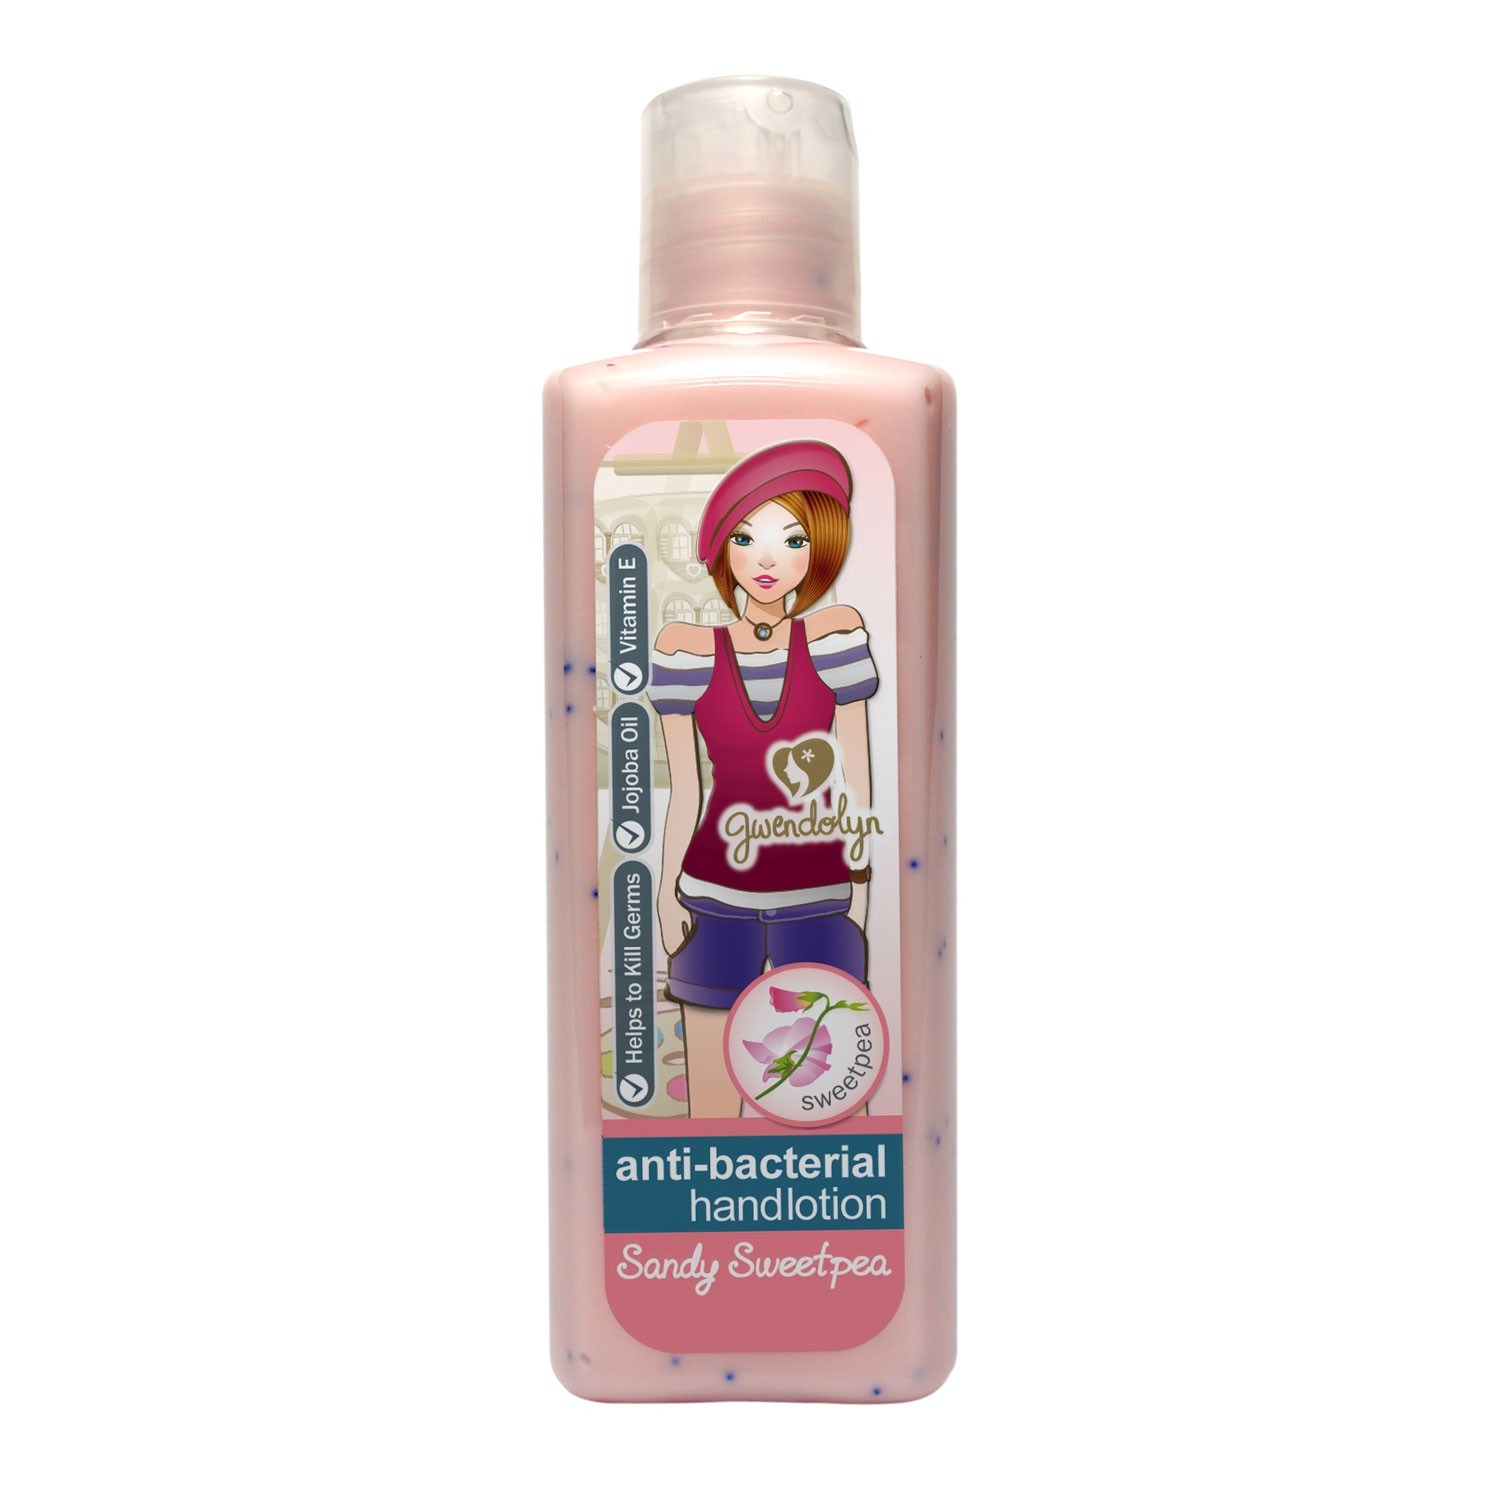 Gwendolyn Anti-Bacterial Hand Lotion